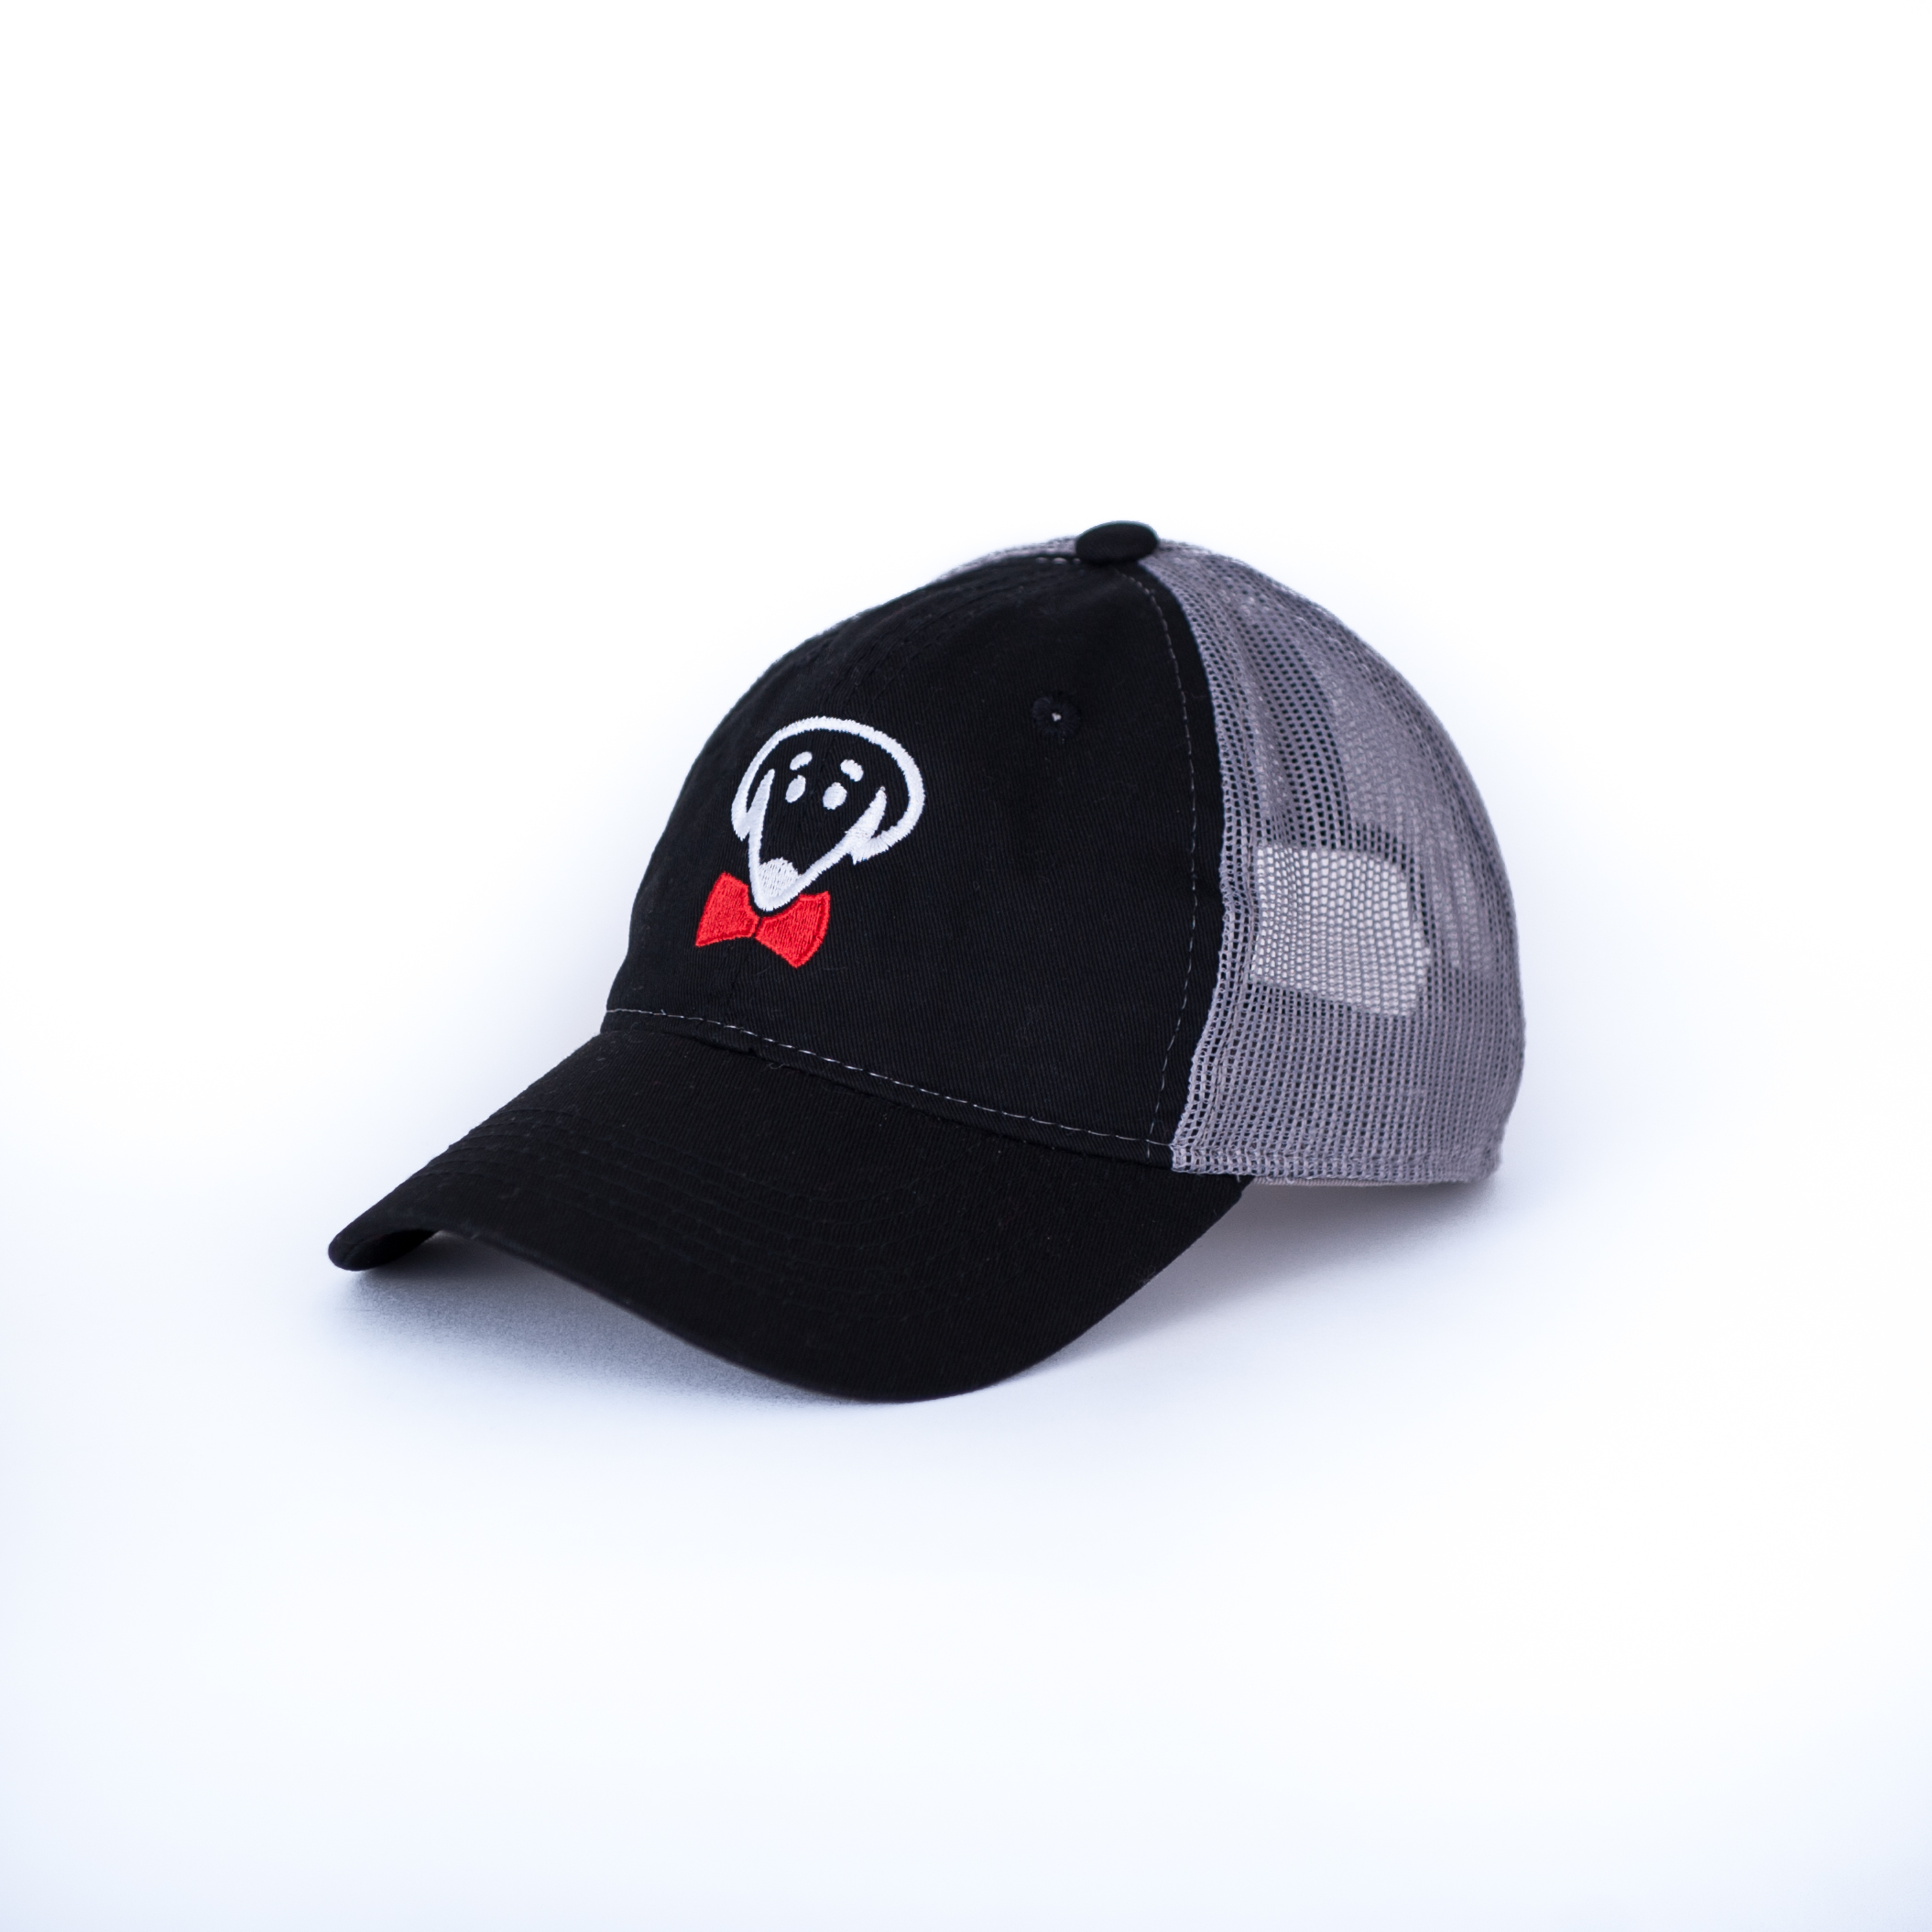 Bow Ties Dog Logo Baseball Hat-Black and Dark Gray